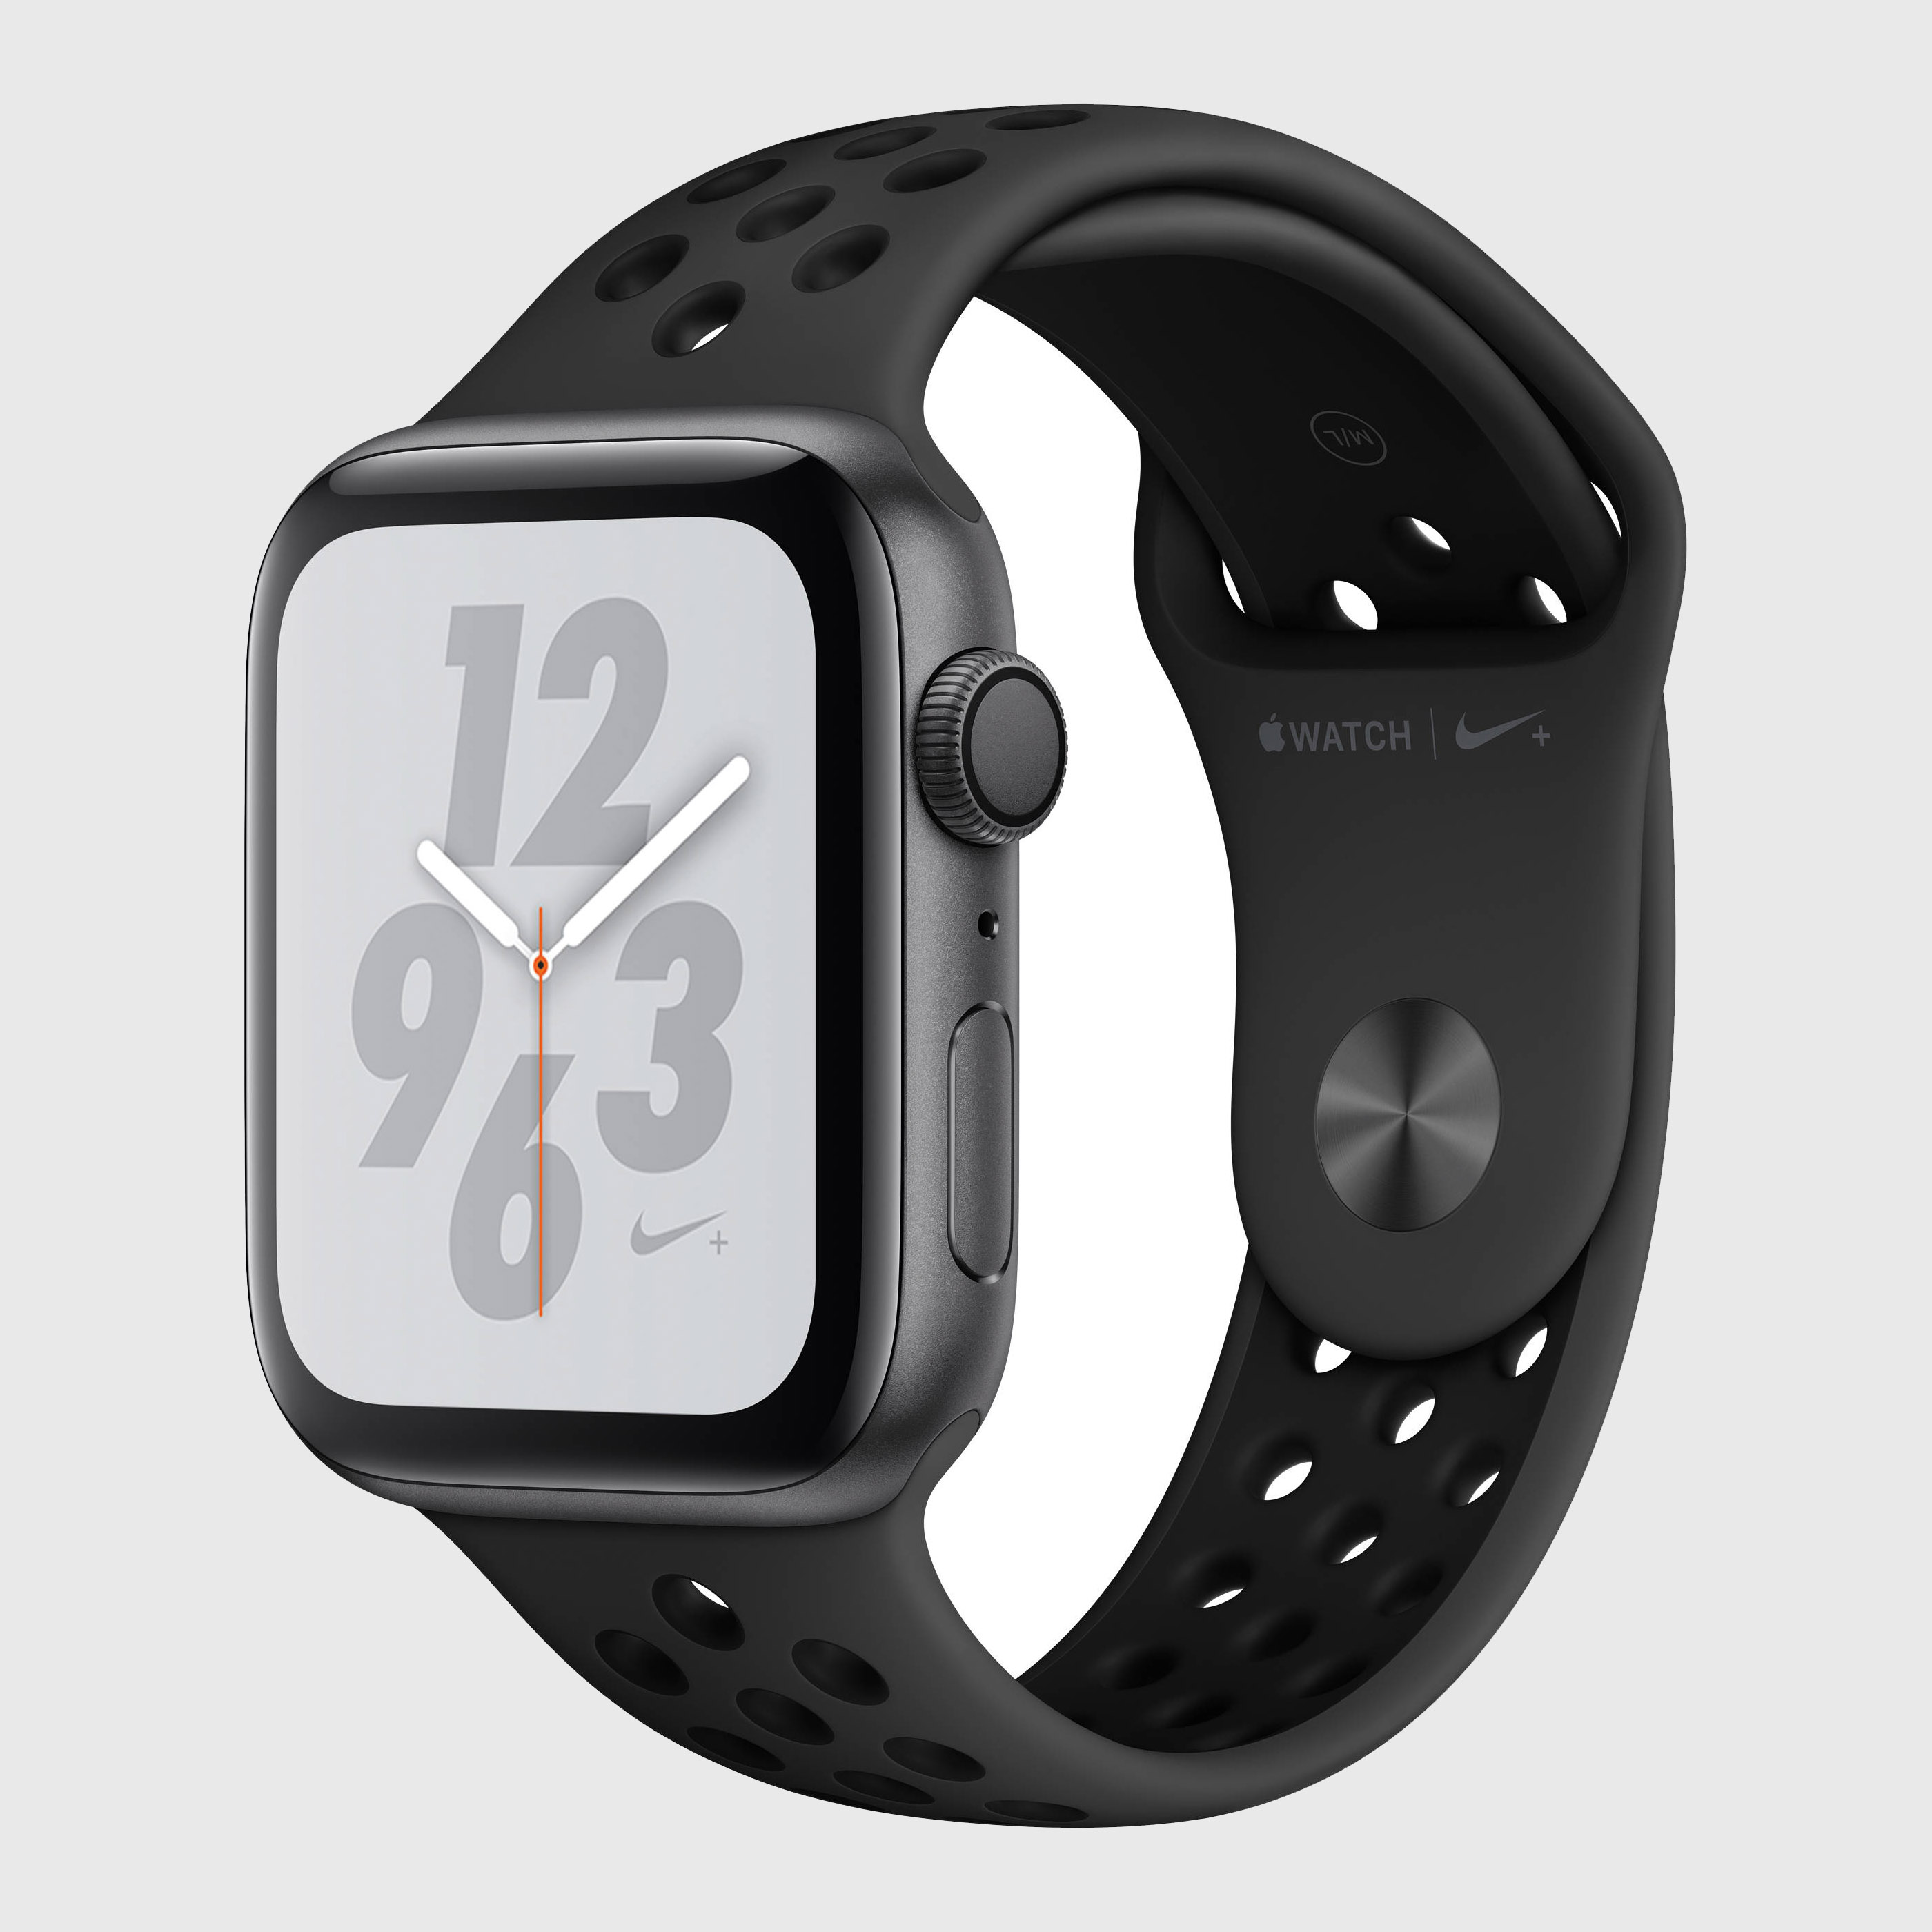 Apple Watch Nike+ Series 4 Performance Upgrade: Experts' Picks